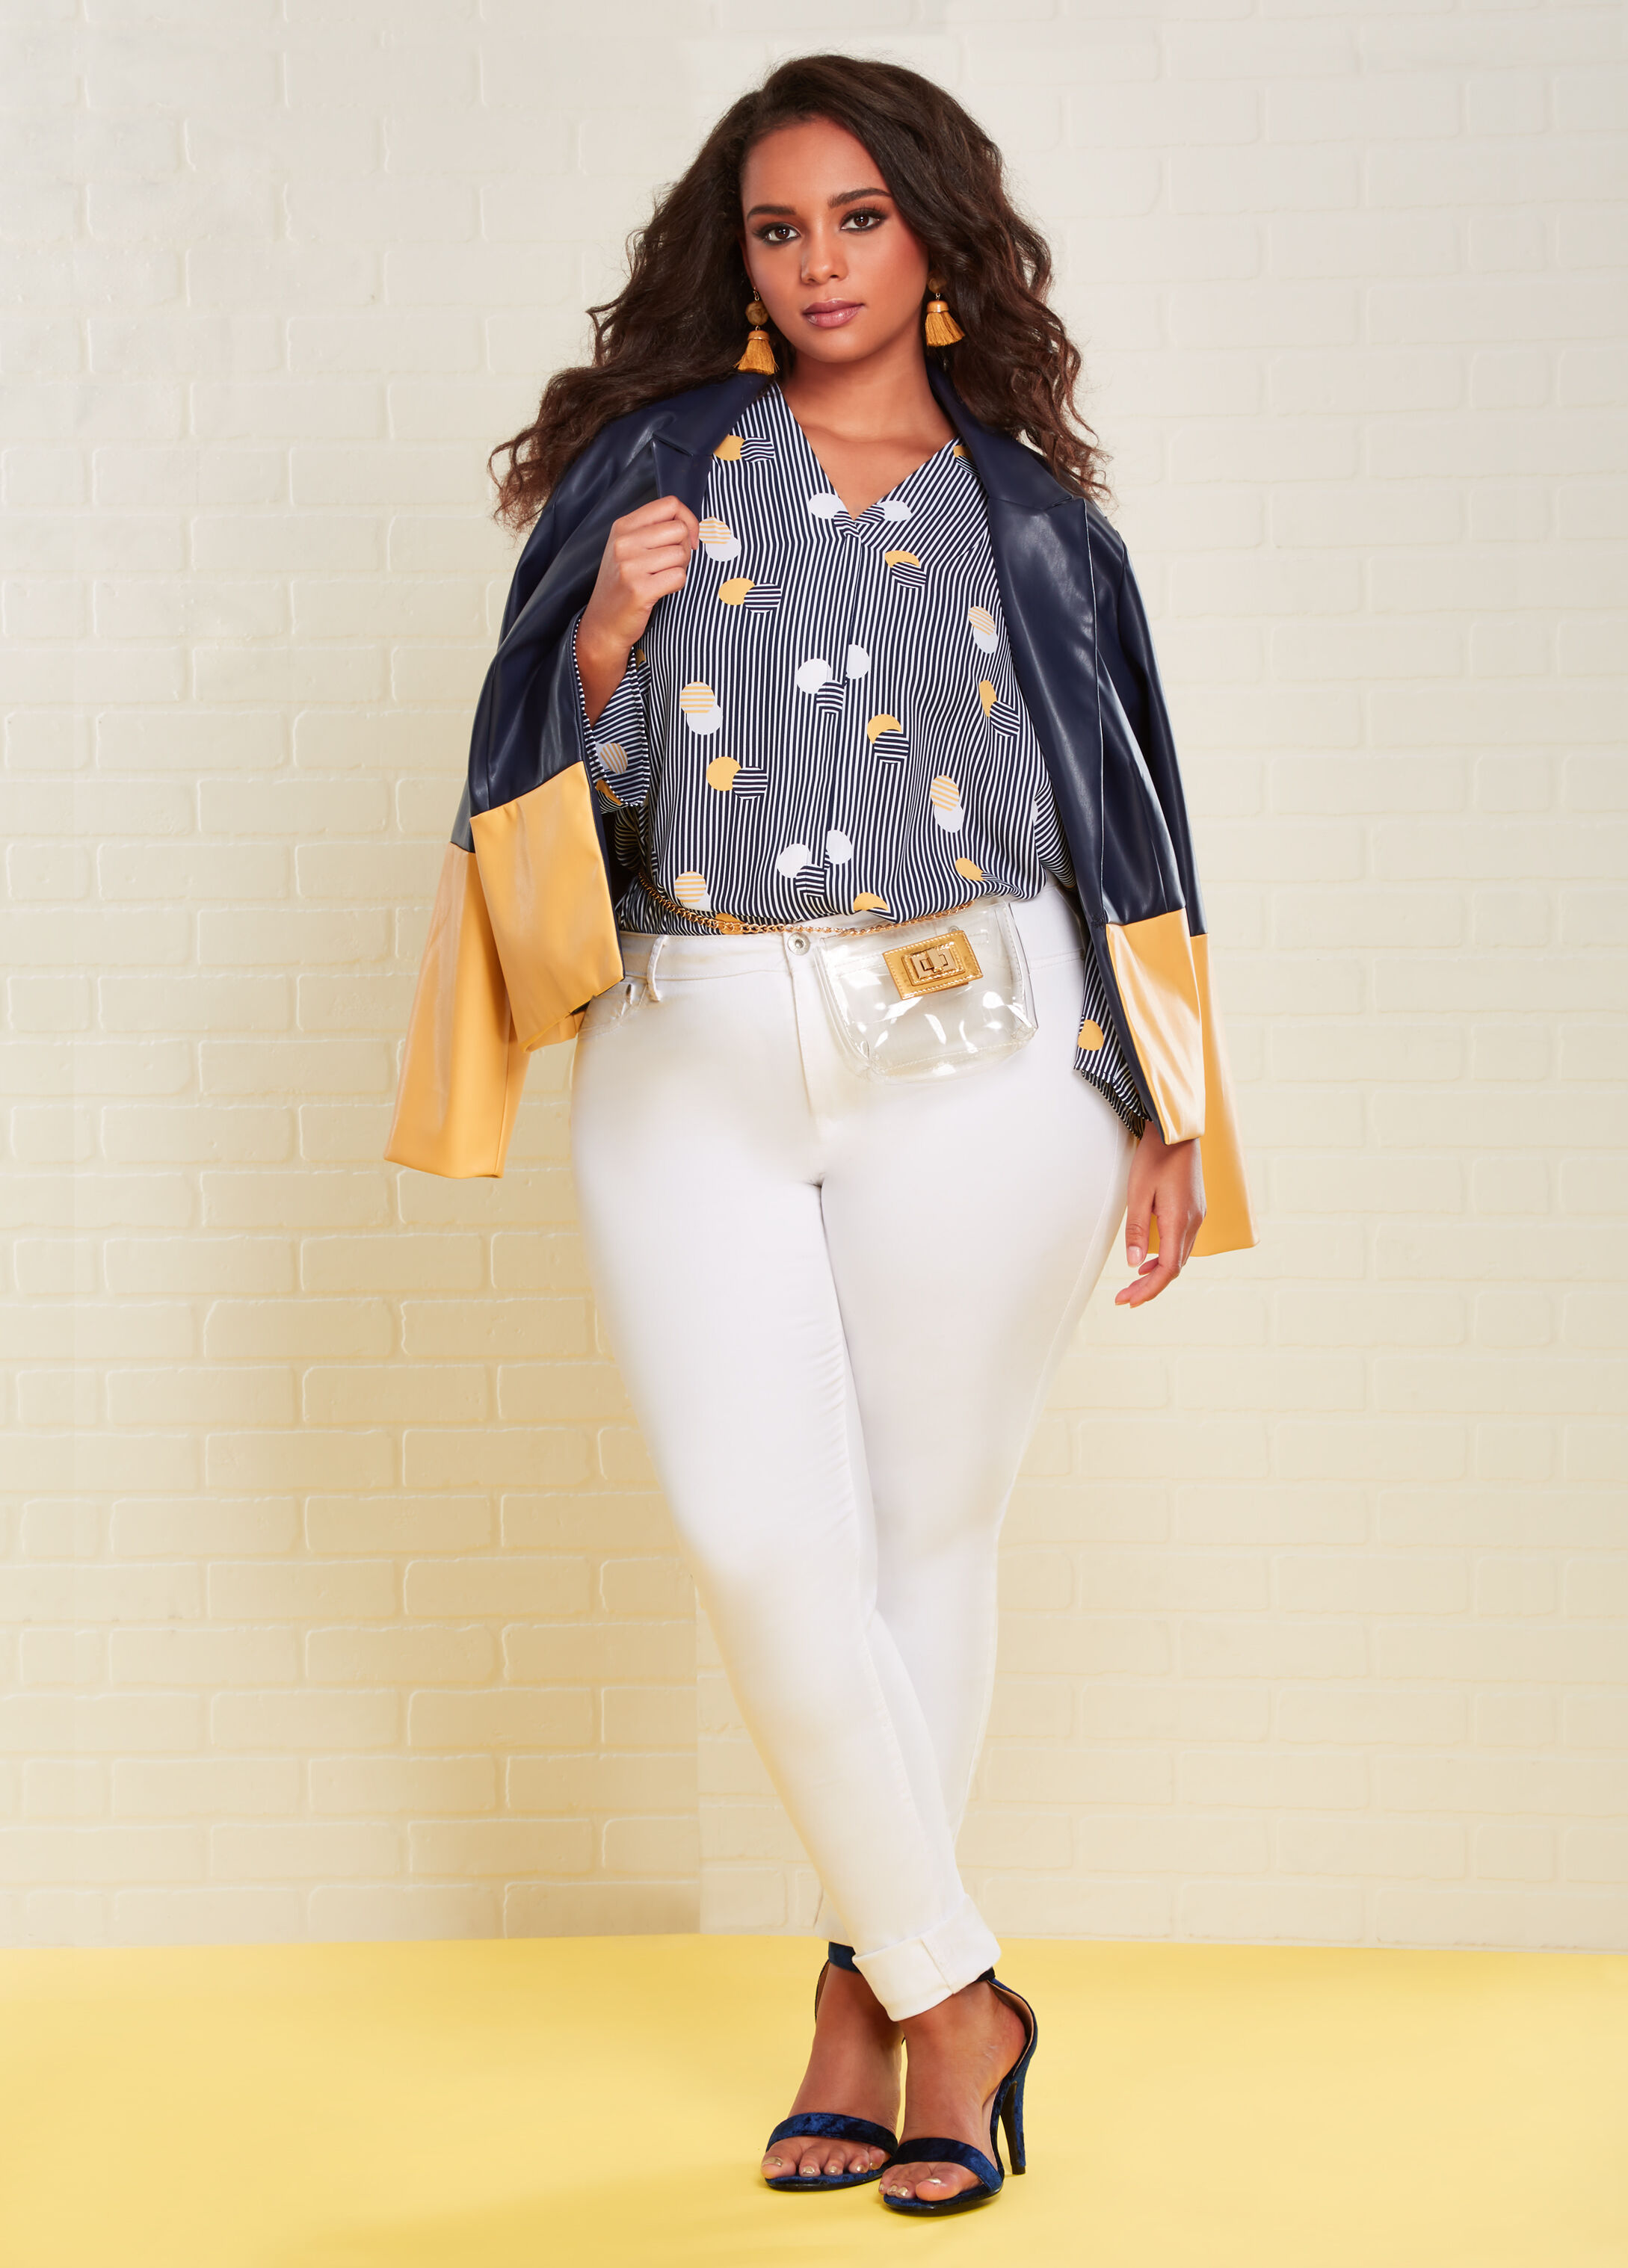 Plus Size Outfits - Dot and Stripe Blouse with Blazer and Jeans